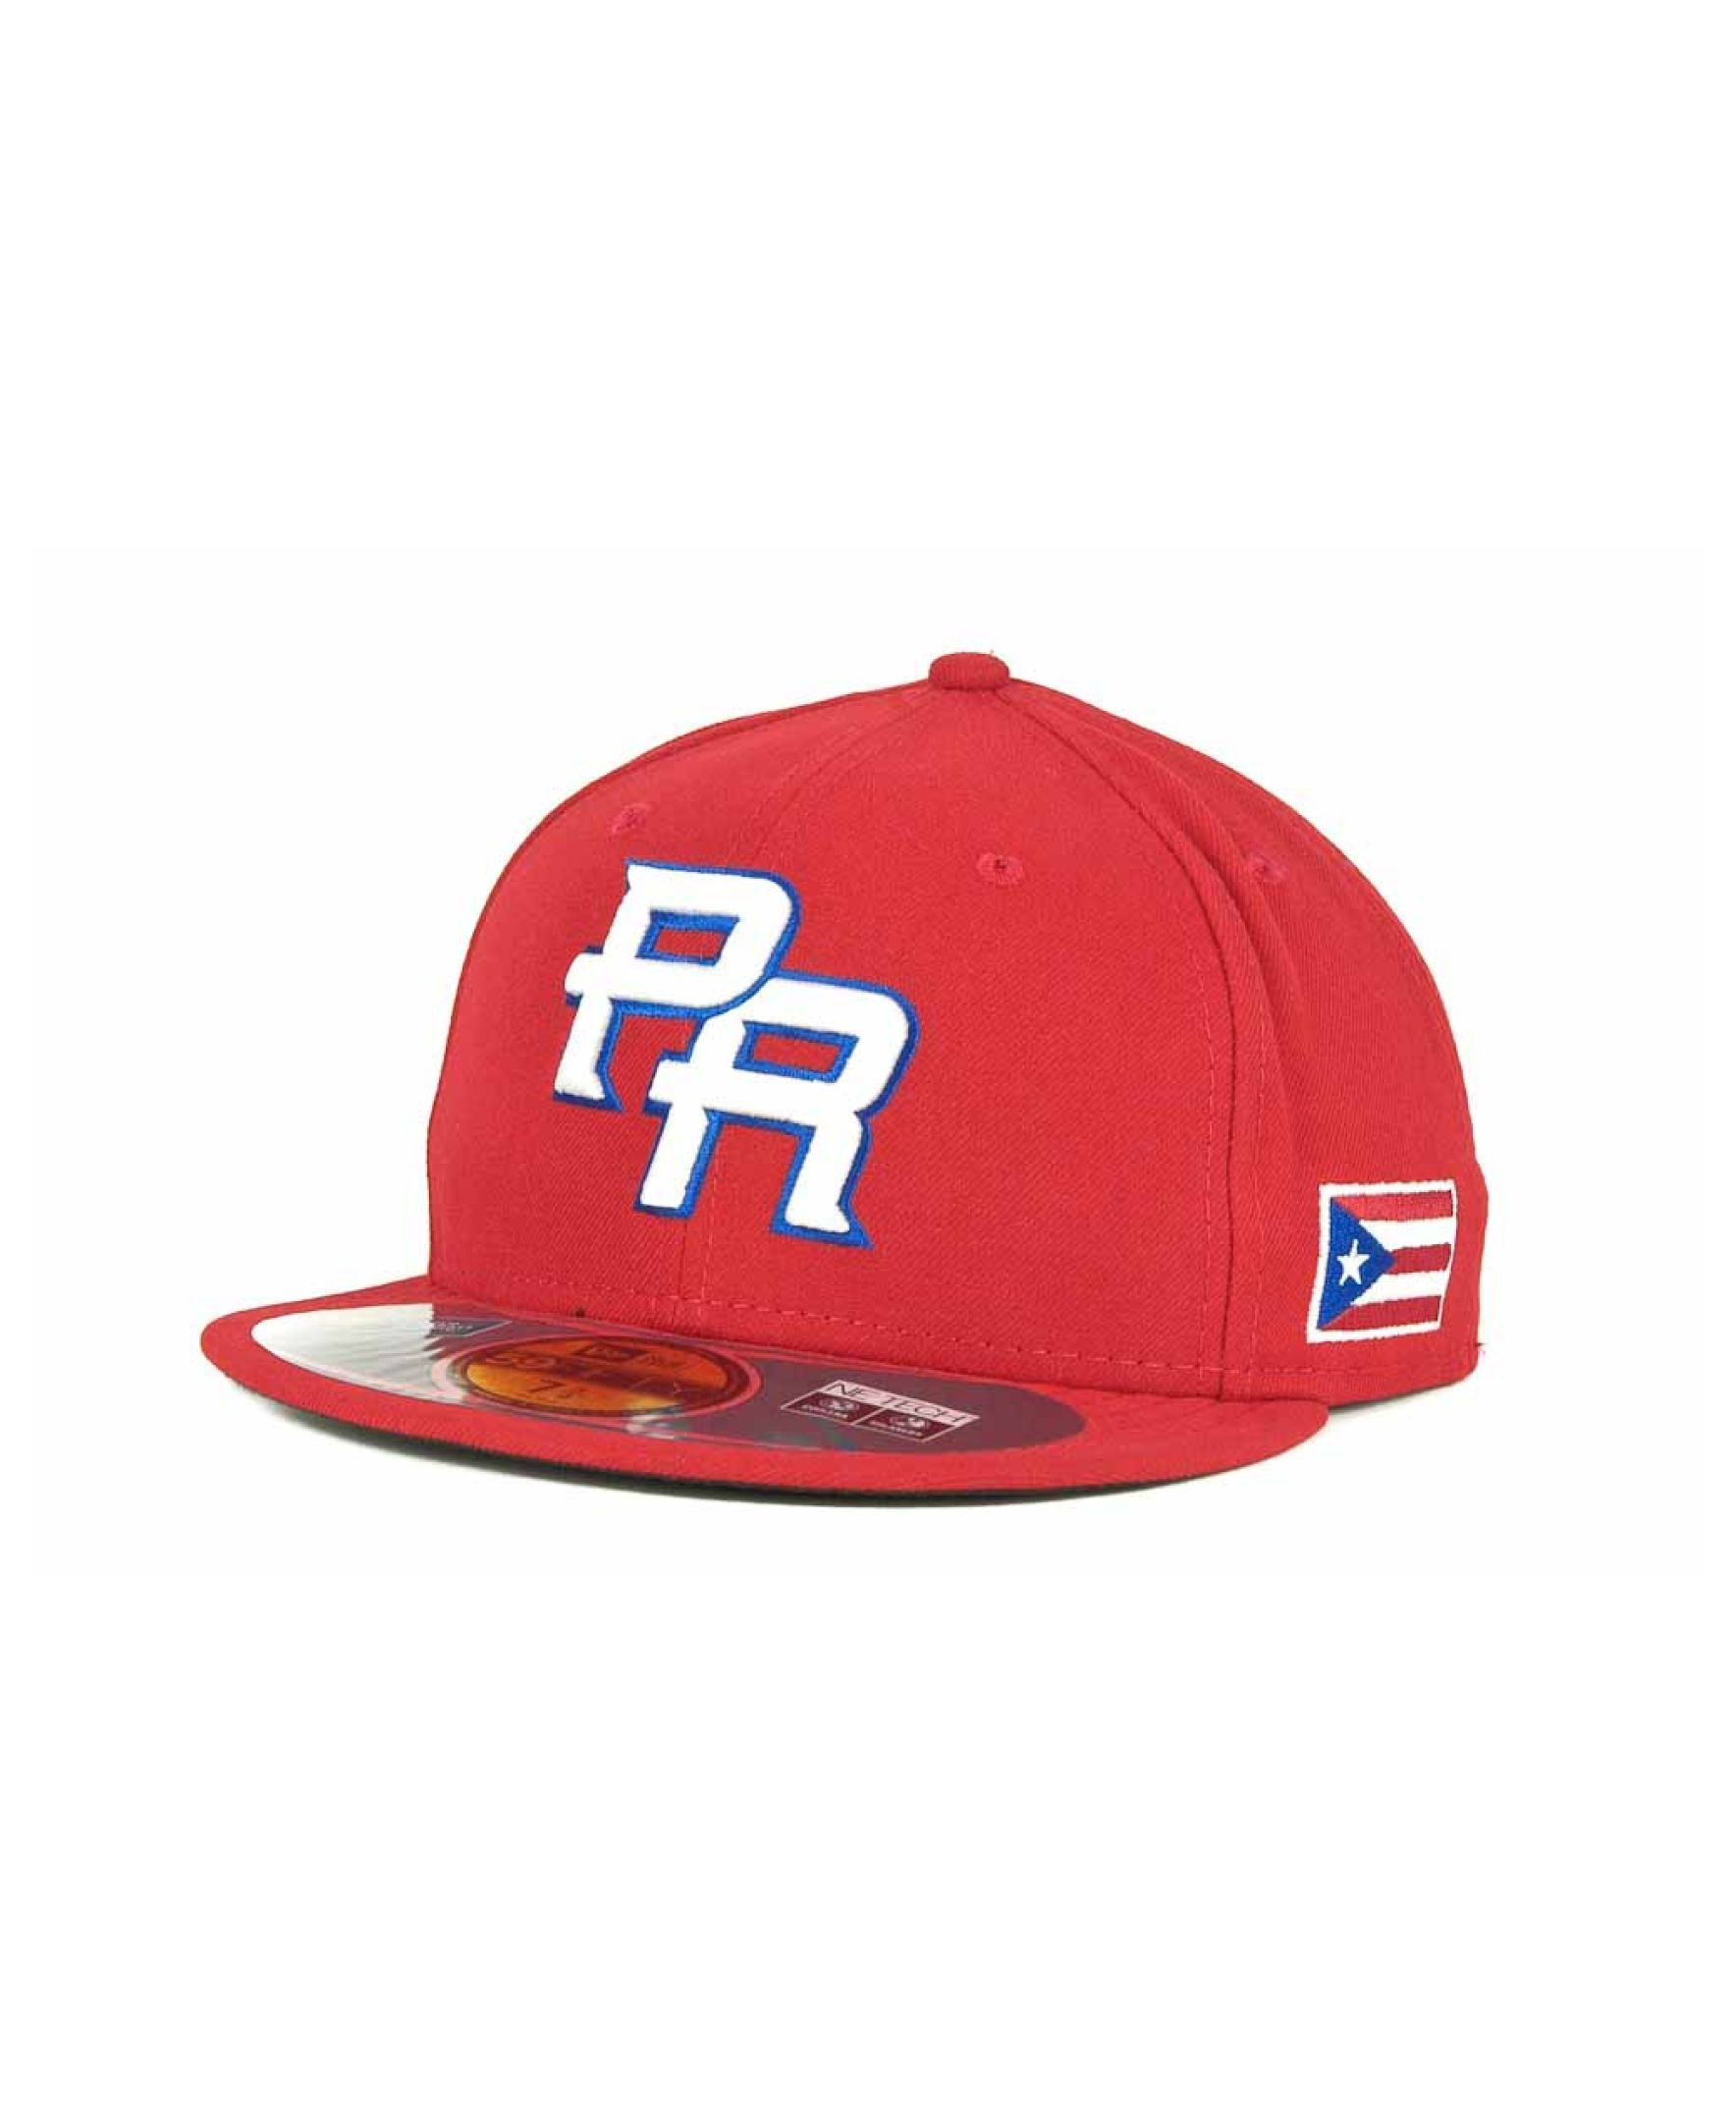 ... usa new era puerto rico 2013 world baseball classic 59fifty cap 42b4a  7bc56 854fae367e04